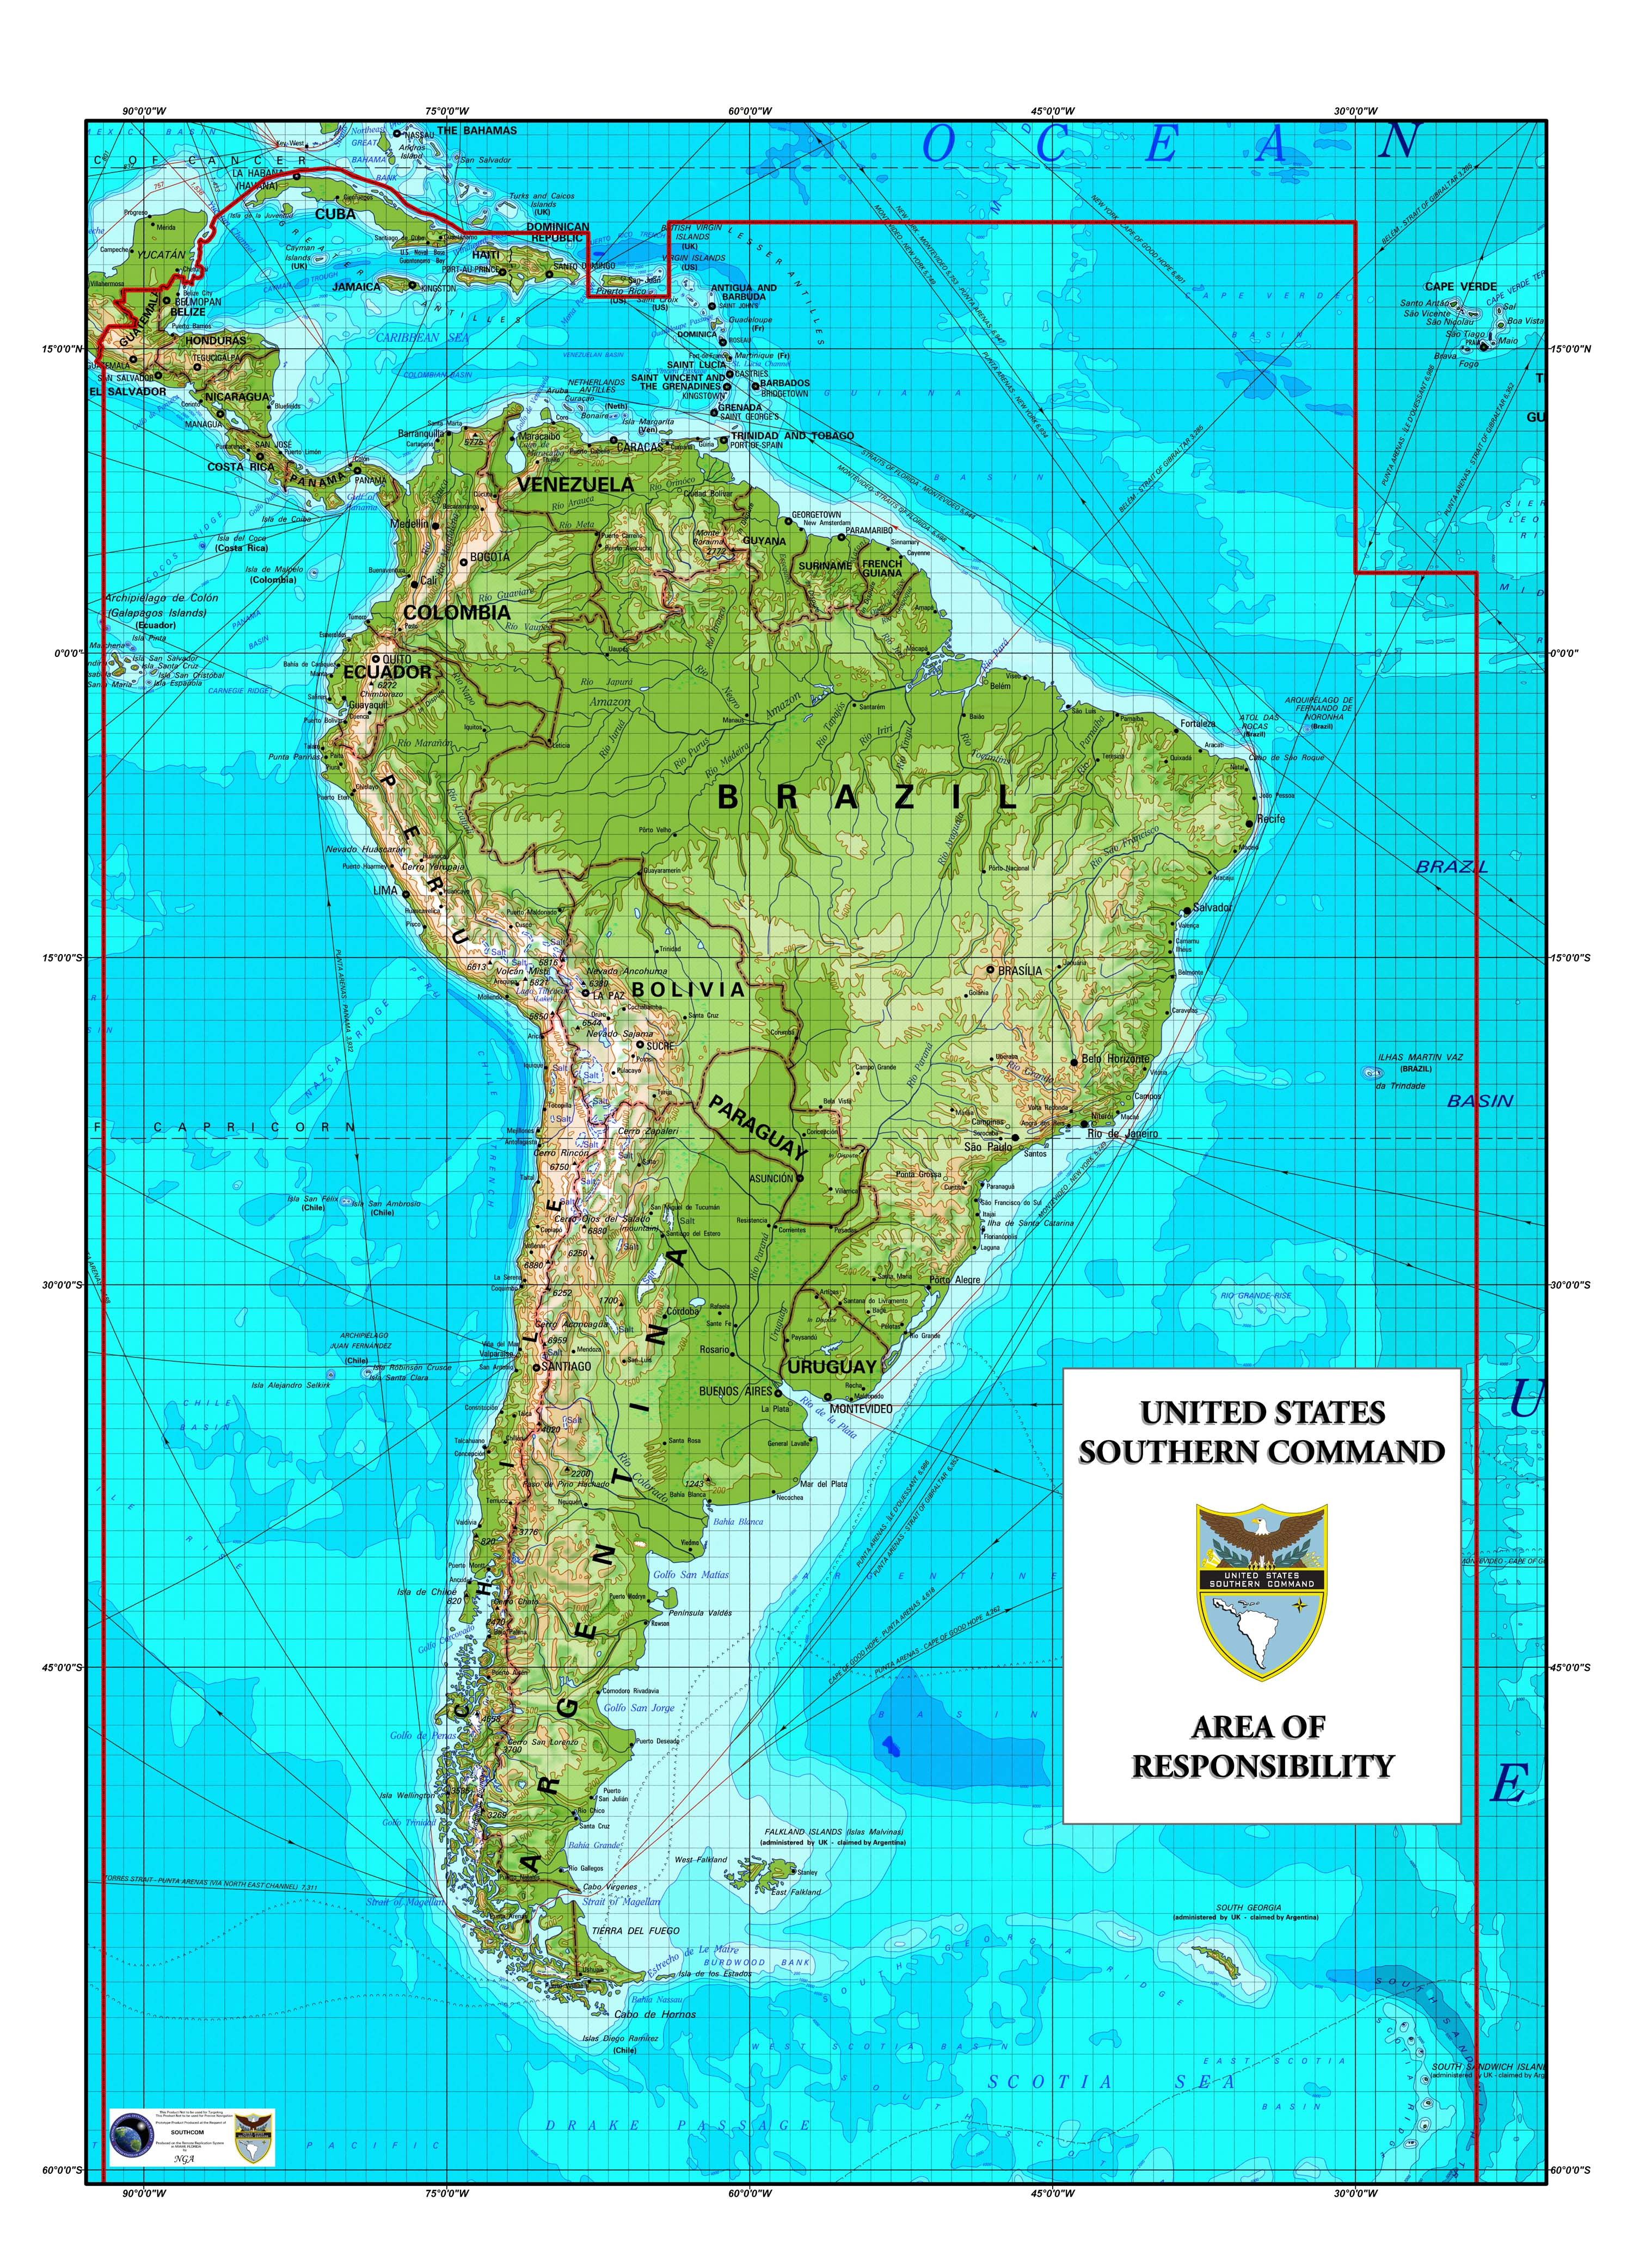 Southcoms area of responsibility map of central america south america delineating southcom area of responsiblity gumiabroncs Gallery